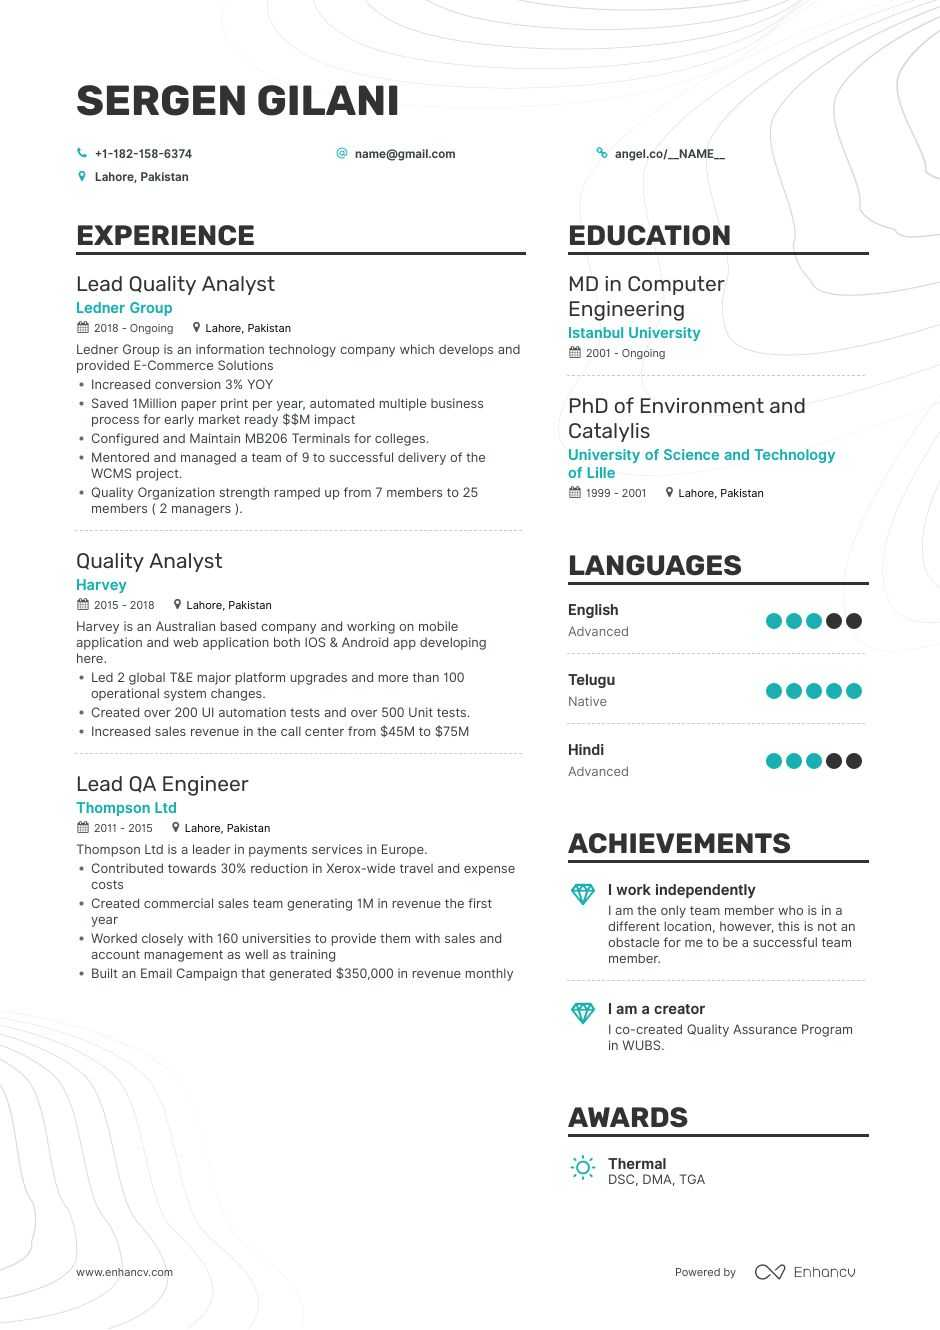 quality analyst resume samples step by guide for enhancv assurance sample interests and Resume Quality Assurance Analyst Resume Sample